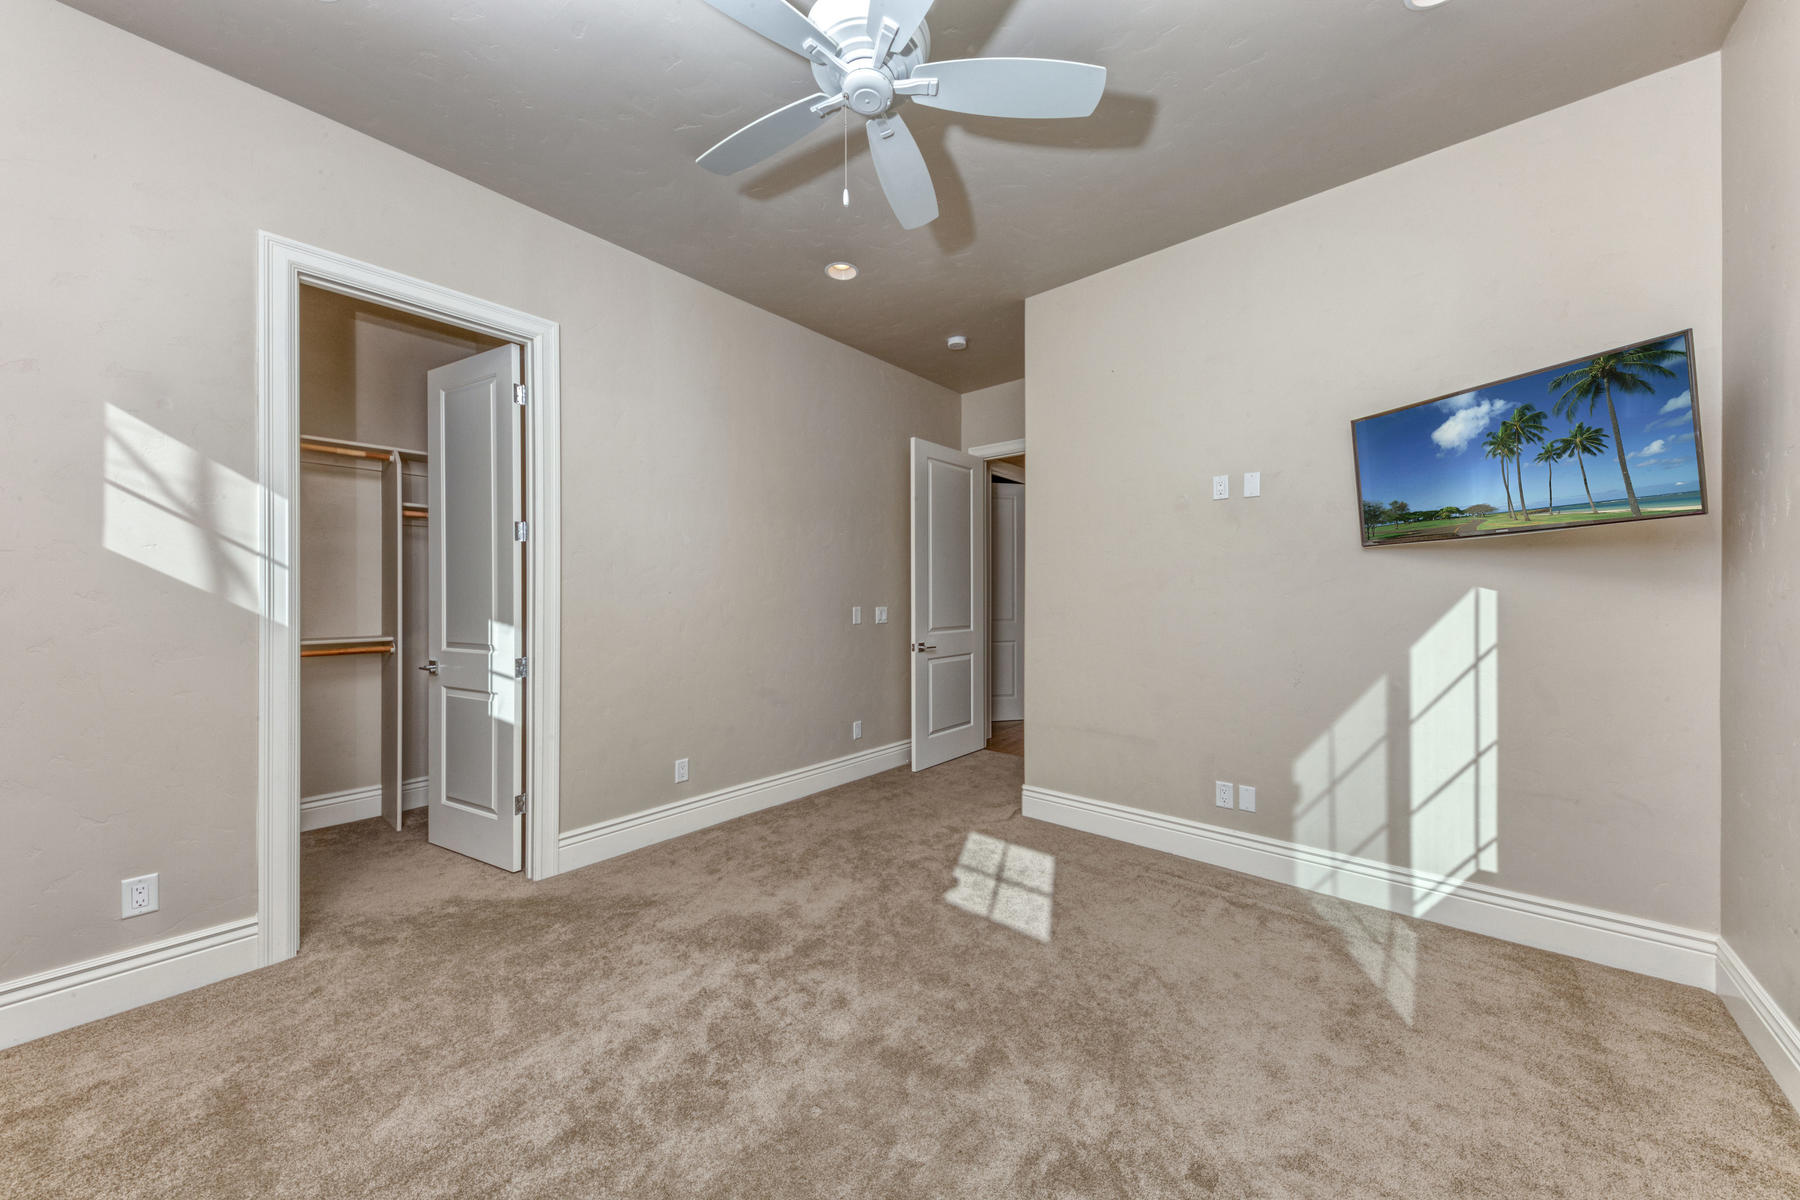 Additional photo for property listing at 20685 Margaux Reno, NV 89511 20685 Margaux Road Reno, Nevada 89511 United States